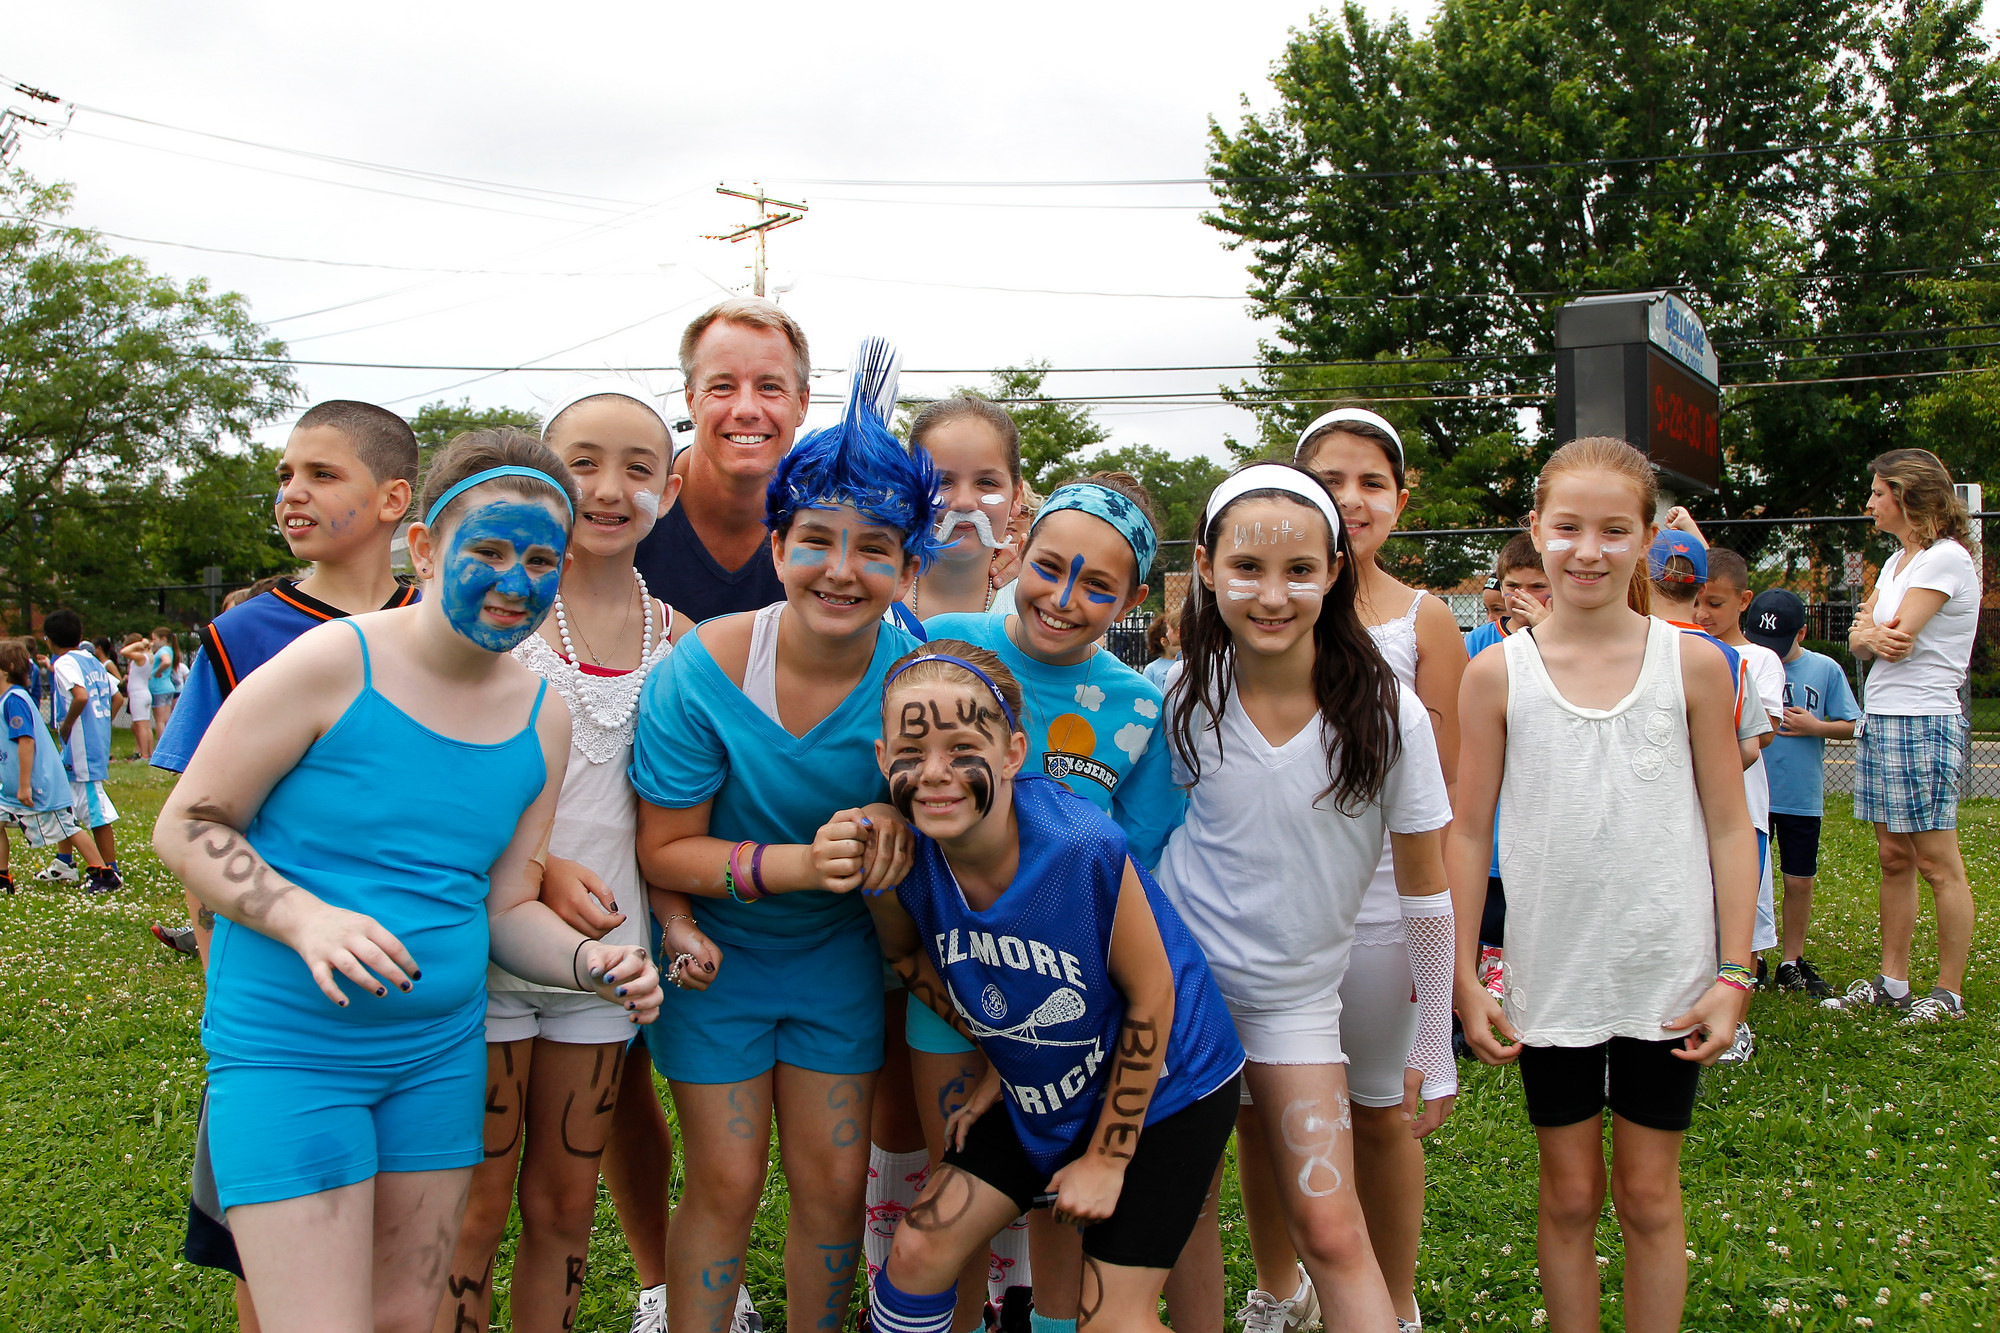 Physical Education teacher John Wolkiewicz enjoyed a moment with members of Ms. Cammarata�s fourth grade class before the events began at Winthrop Avenue.